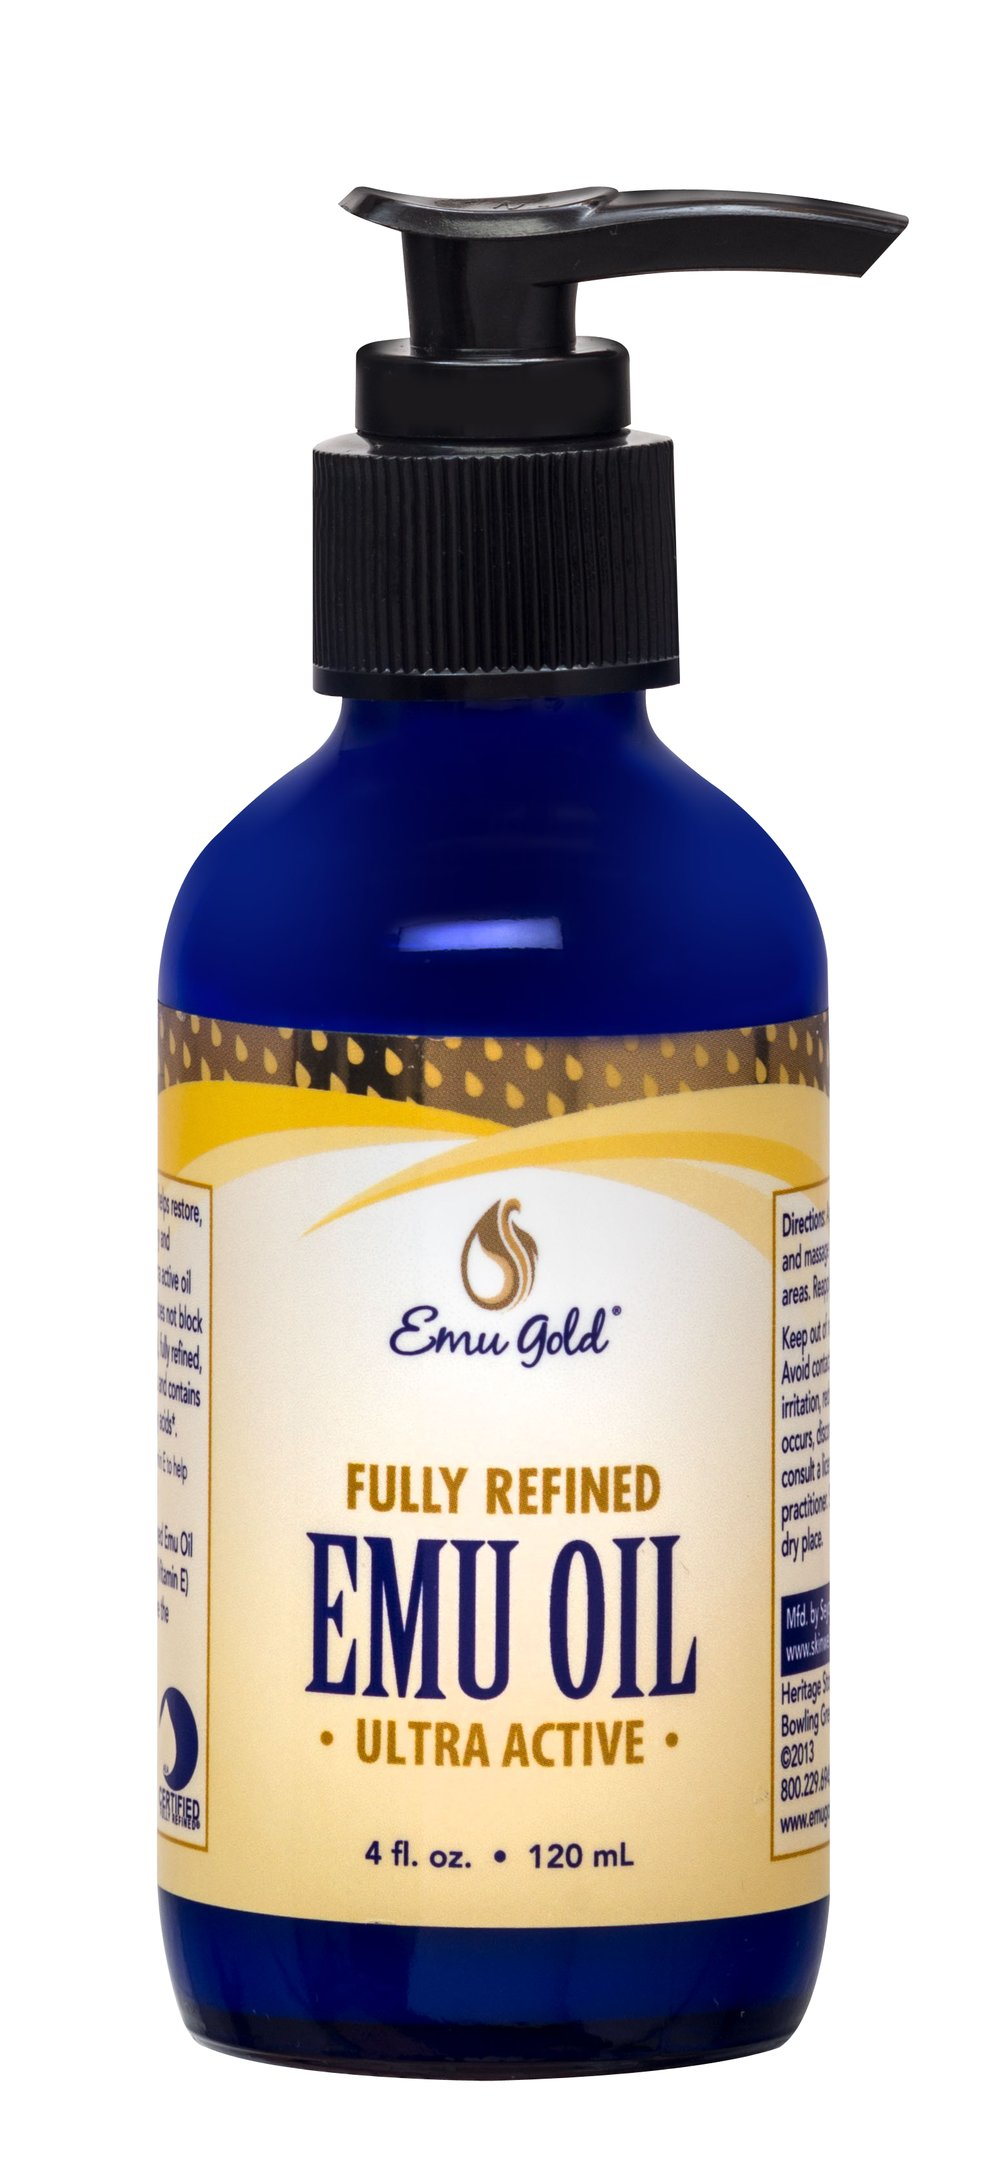 Emu Oil 100% Natural <p><b>From the Manufacturer's Label:</b></p>  <p>Emu Oil 100% 100% Natural is manufactured by Emu Gold®.</p> 4 oz Oil  $28.99